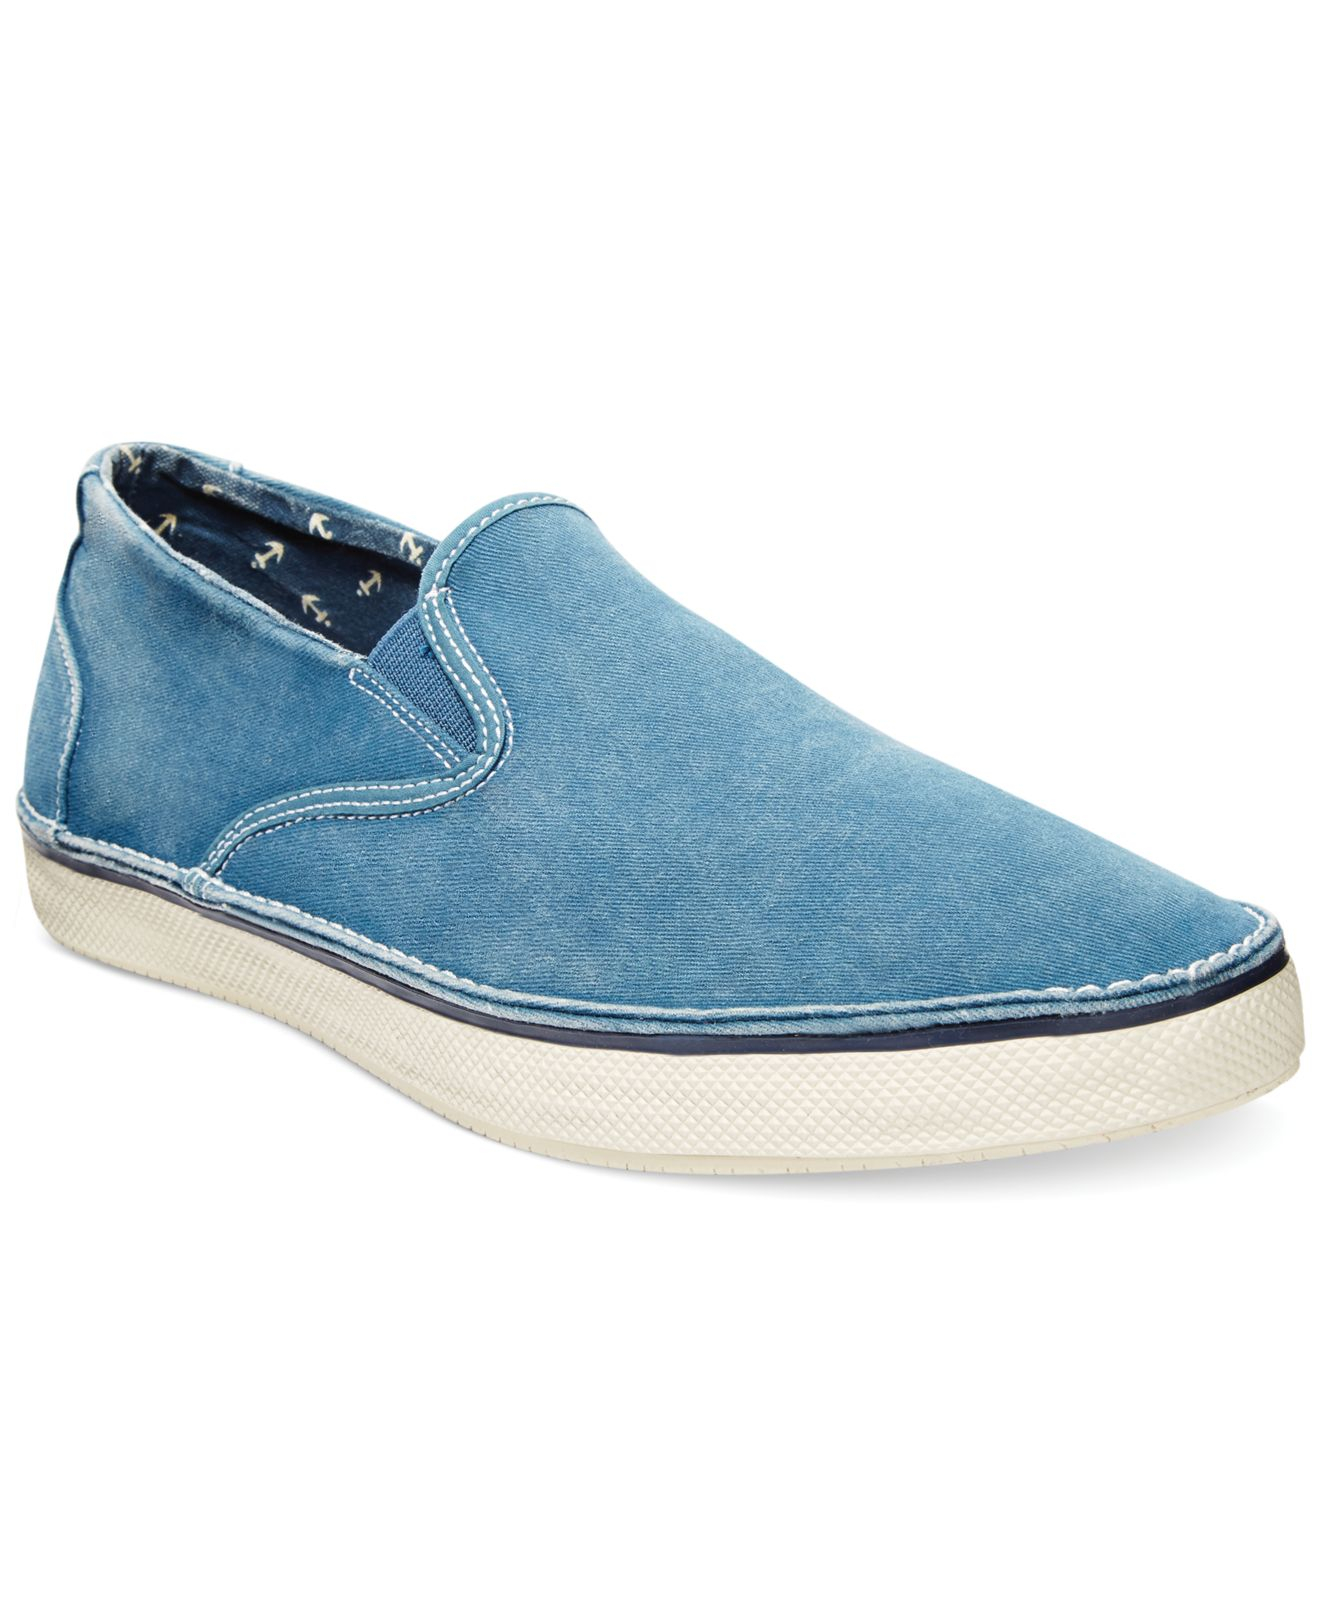 sperry top sider slip on shoes in blue for lyst